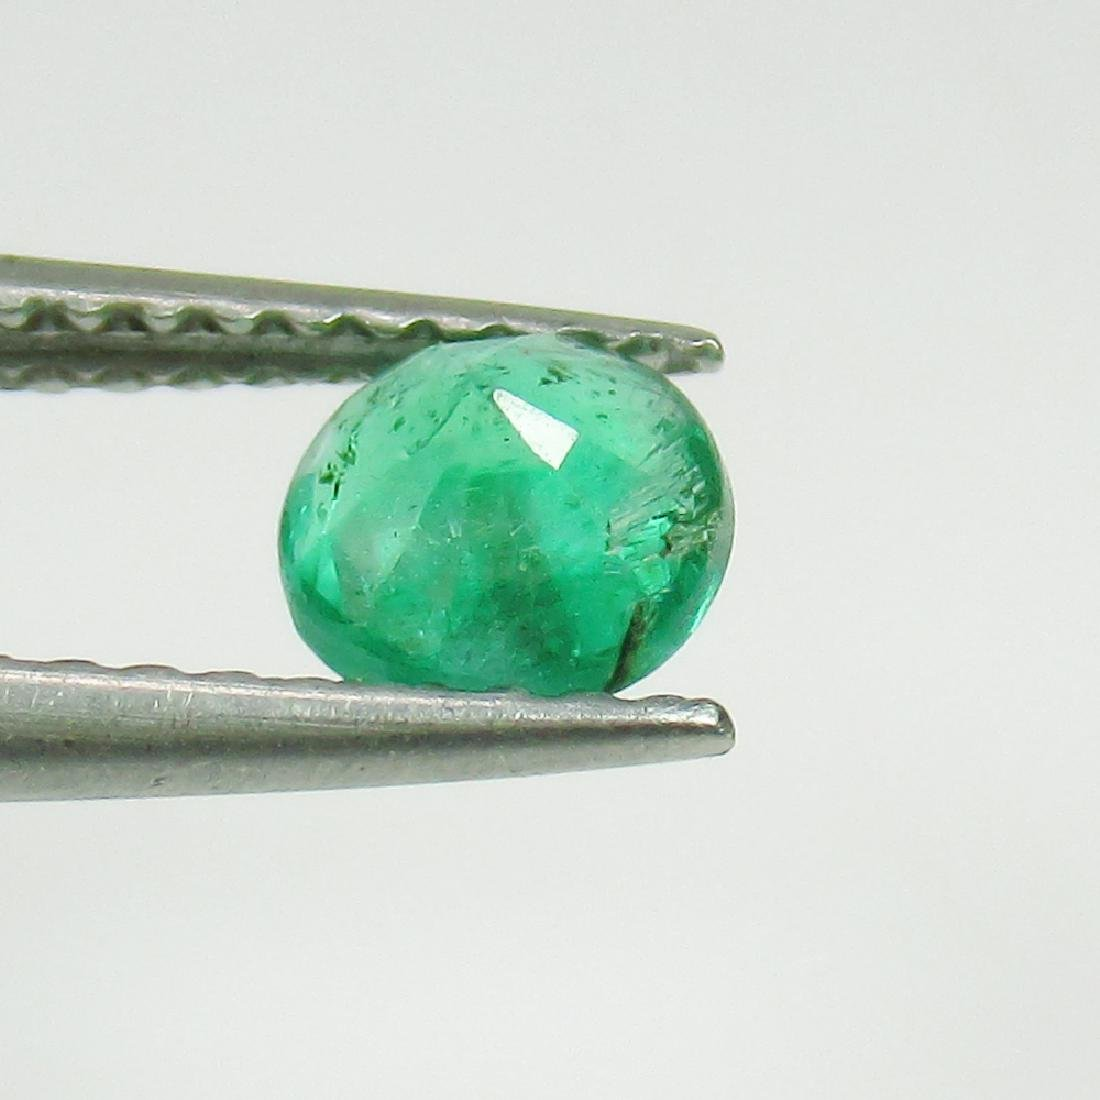 0.43 Ct Genuine Loose Zambian Emerald Good Luster 5.0 - 2